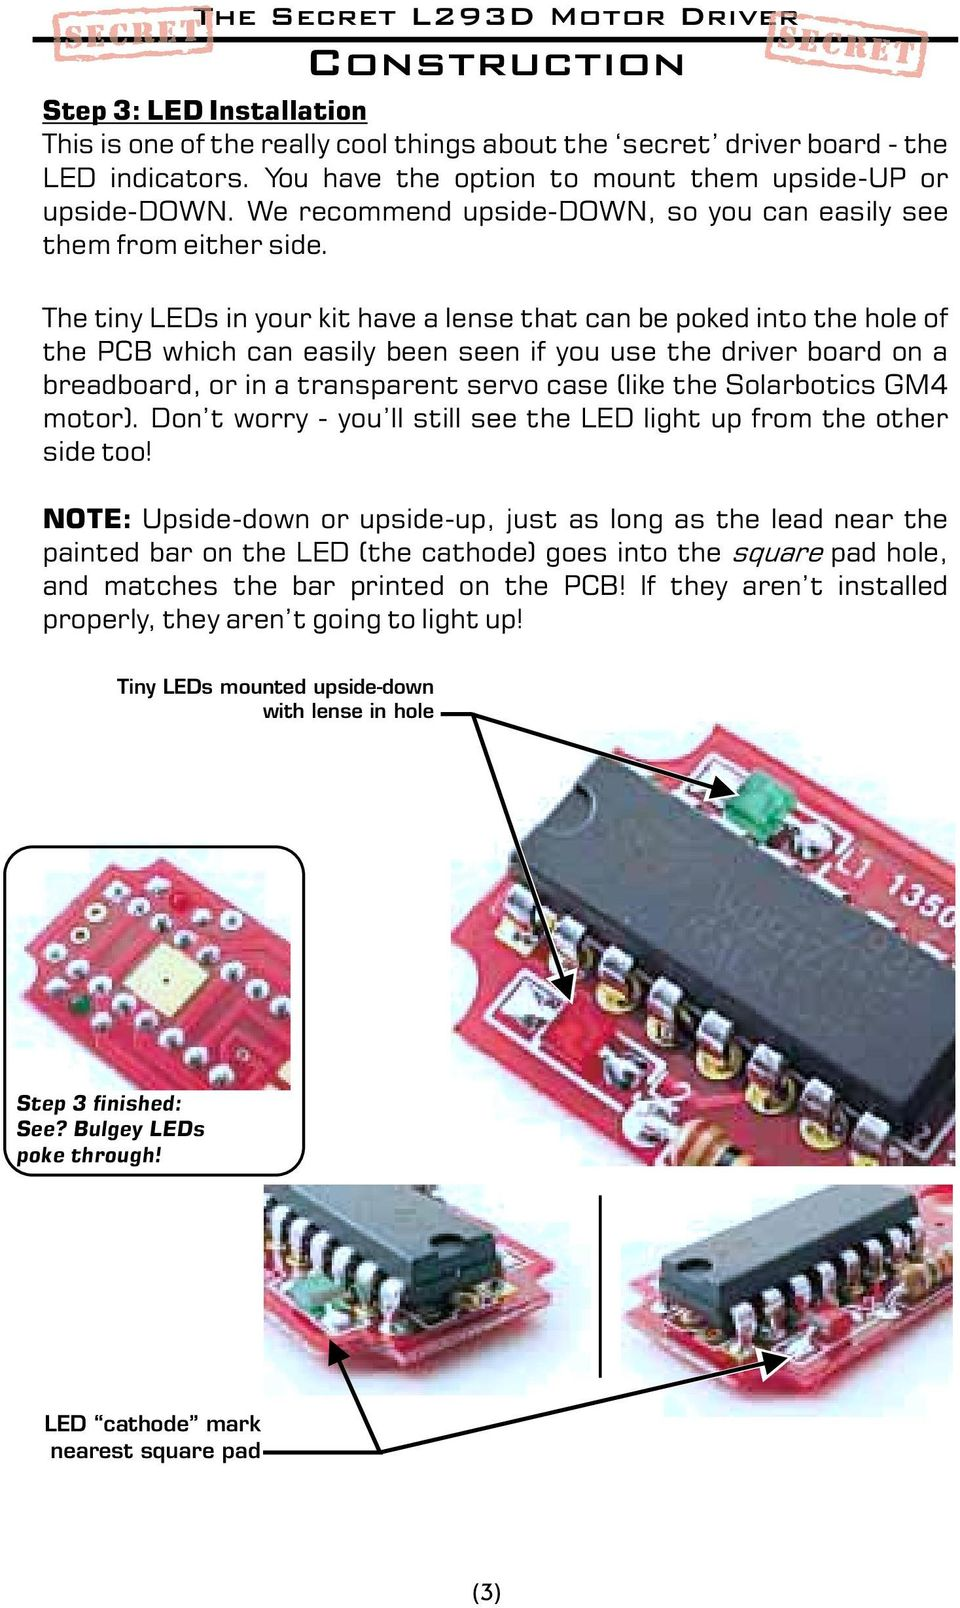 L293d Motor Driver It Fits Right Inside Most Standard Servo Bodies Ic Circuit Free Circuits The Tiny Leds In Your Kit Have A Lense That Can Be Poked Into Hole